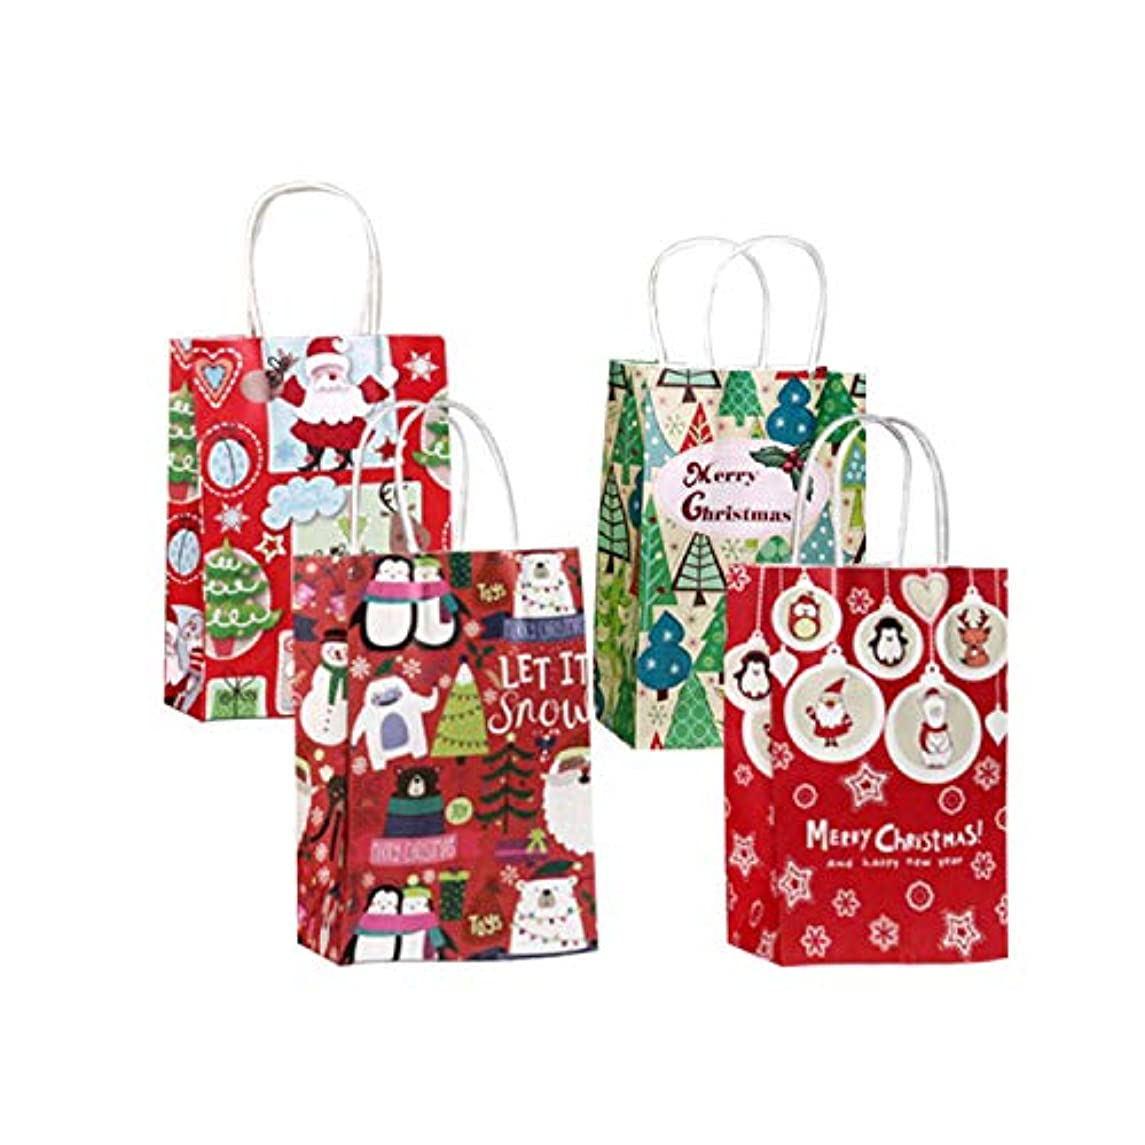 MC TTL12 Christmas Gift Bags for Women and Children Handles Various Designs for Holiday Wrapping Goodie Bags Party Favors